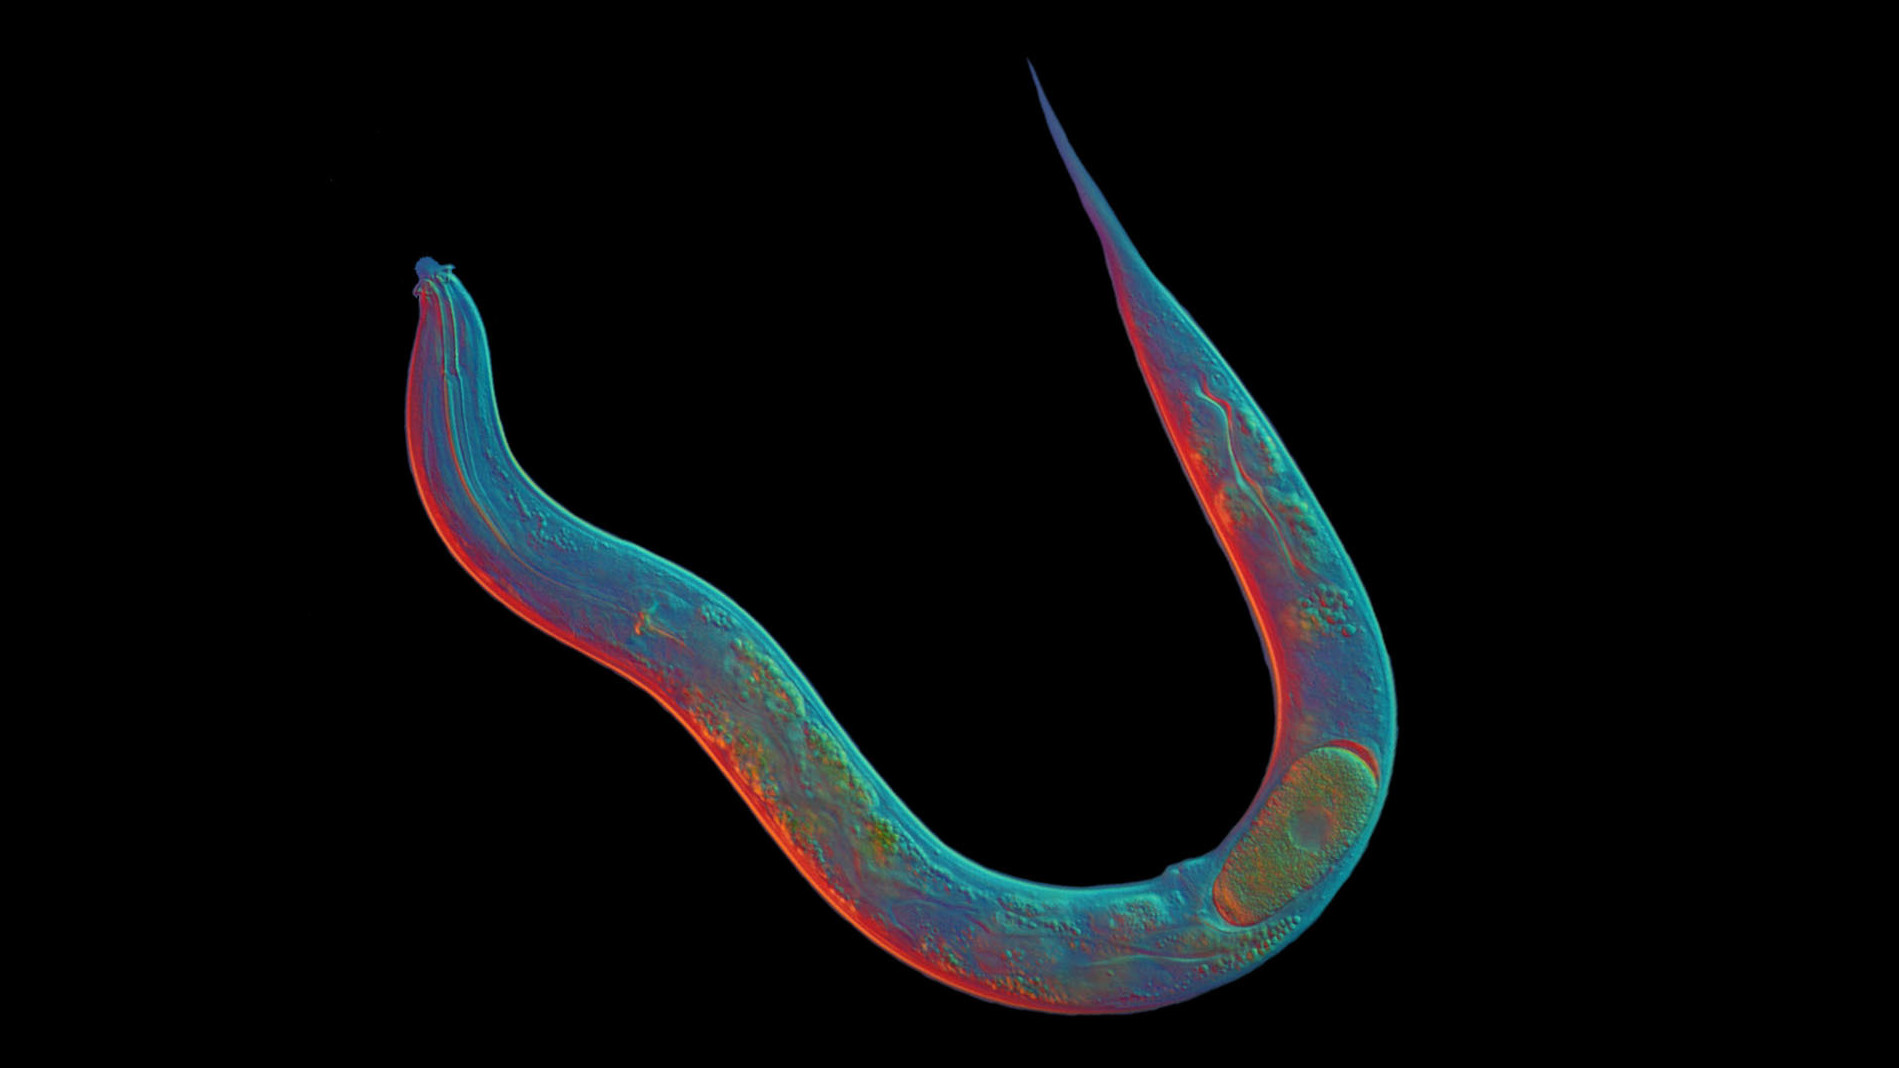 Tiny, Transparent Worm Challenges Notions About Sex